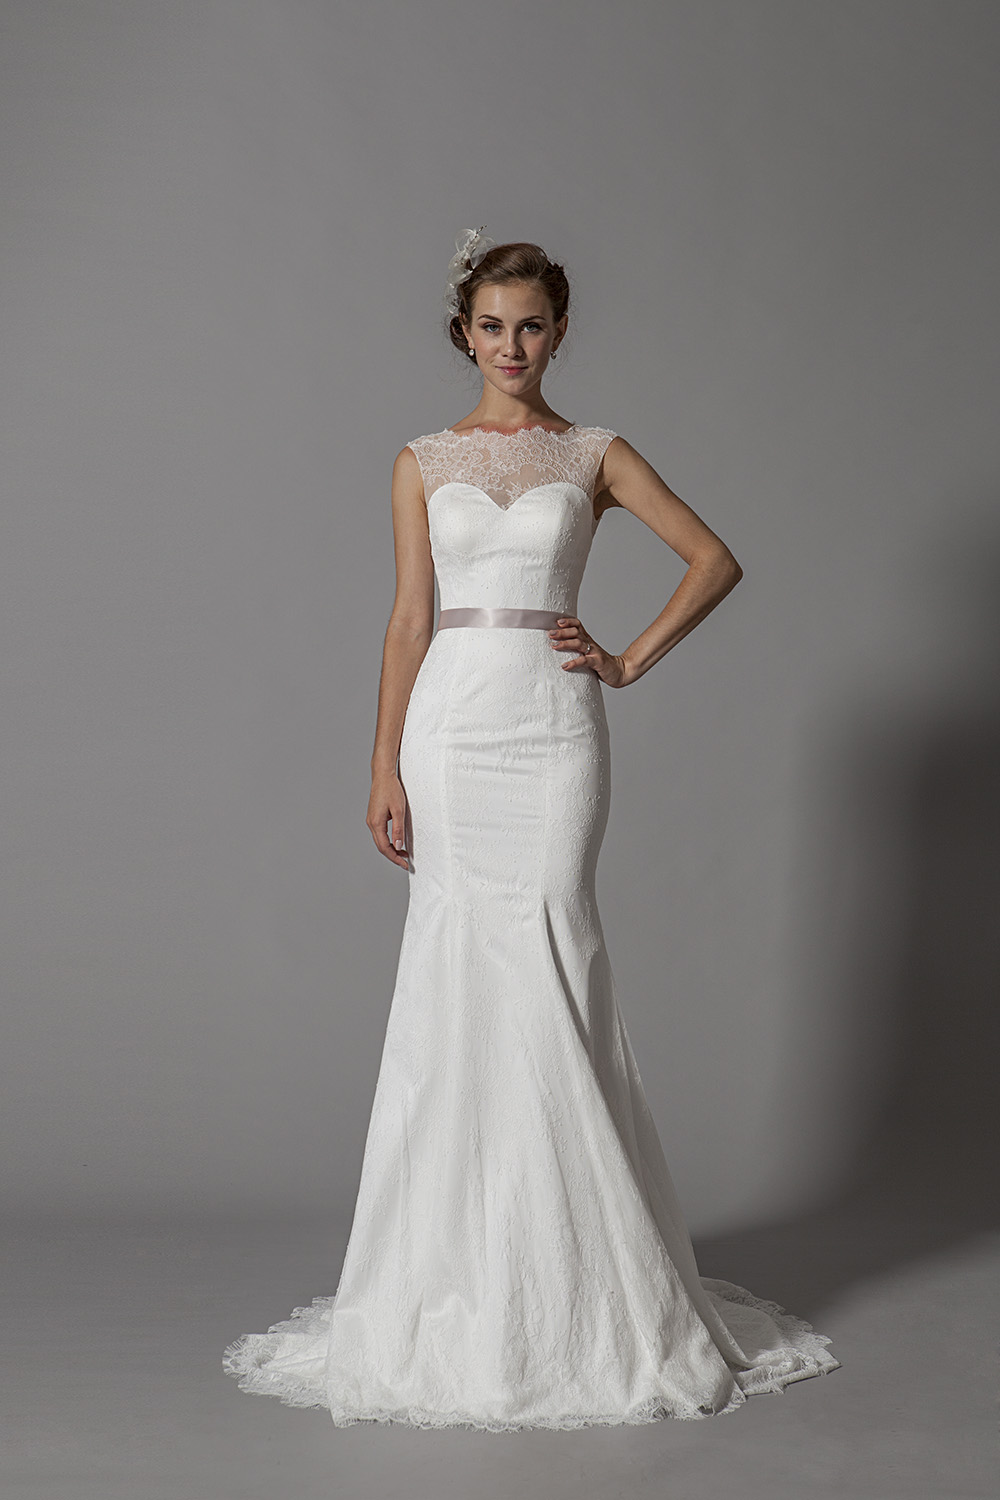 Emesta wedding dress wedding dresses scotland by for Dress up wedding dresses